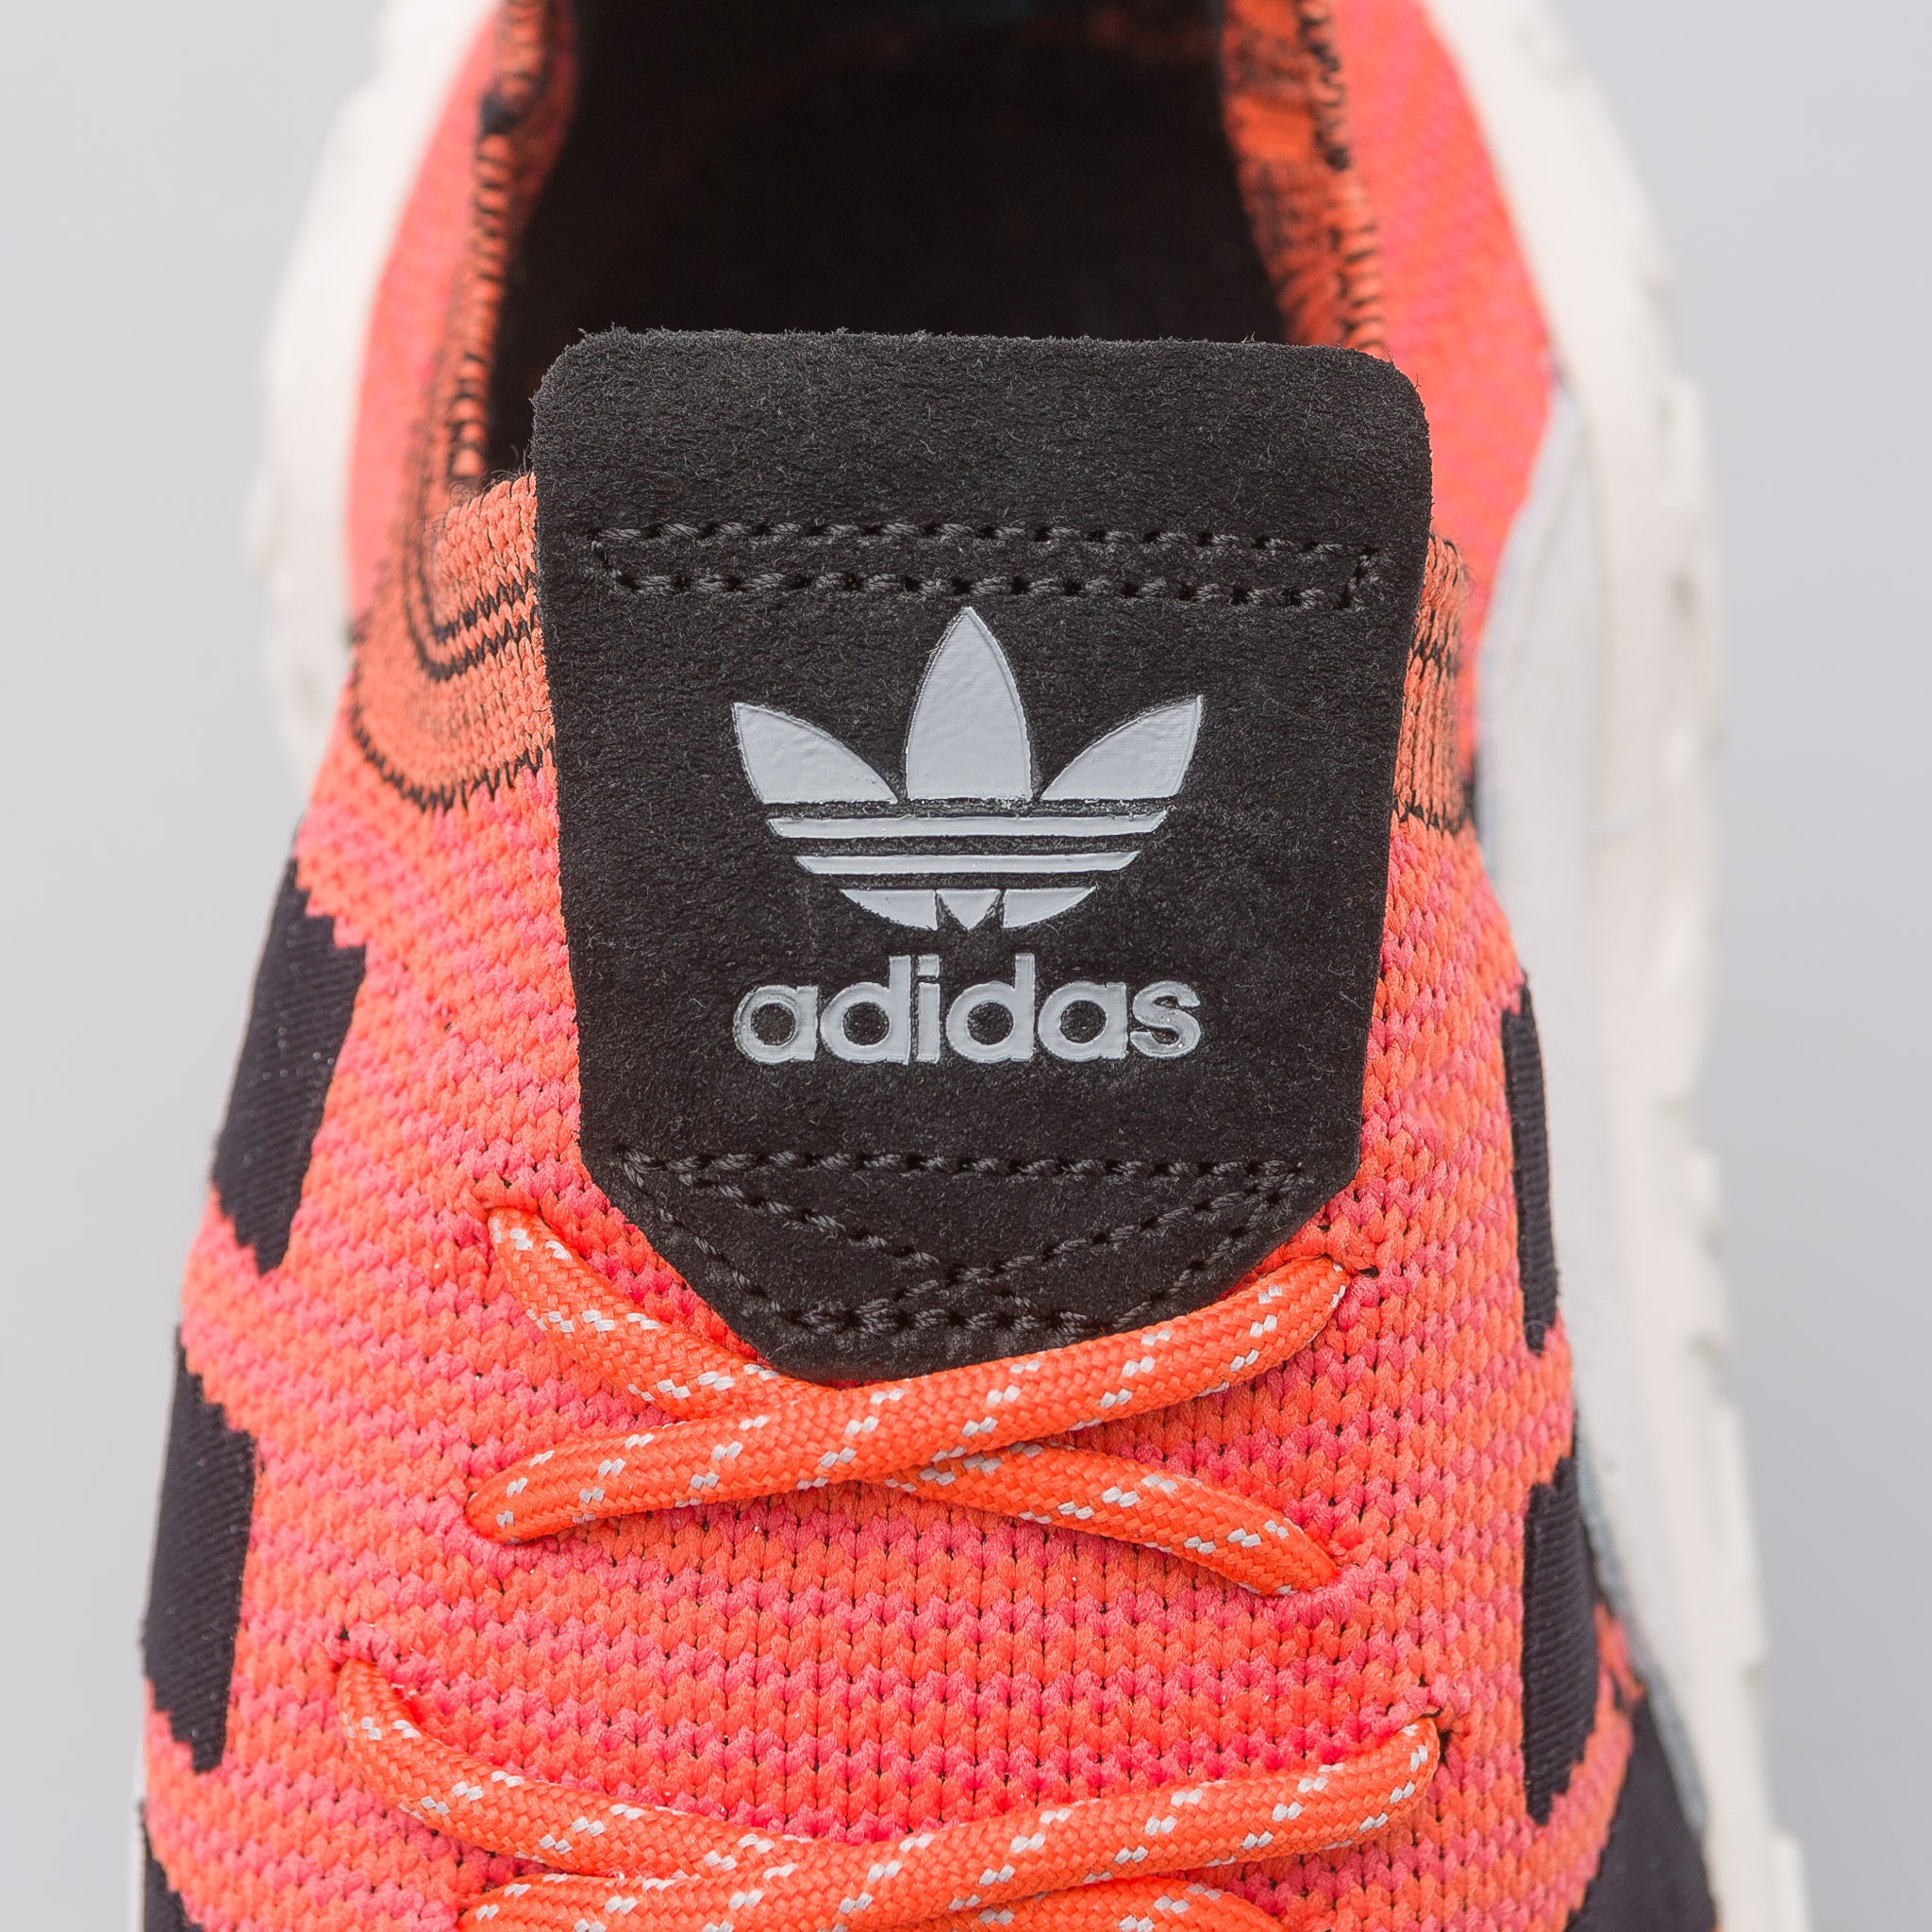 F/22 Primeknit in Trace Orange/White